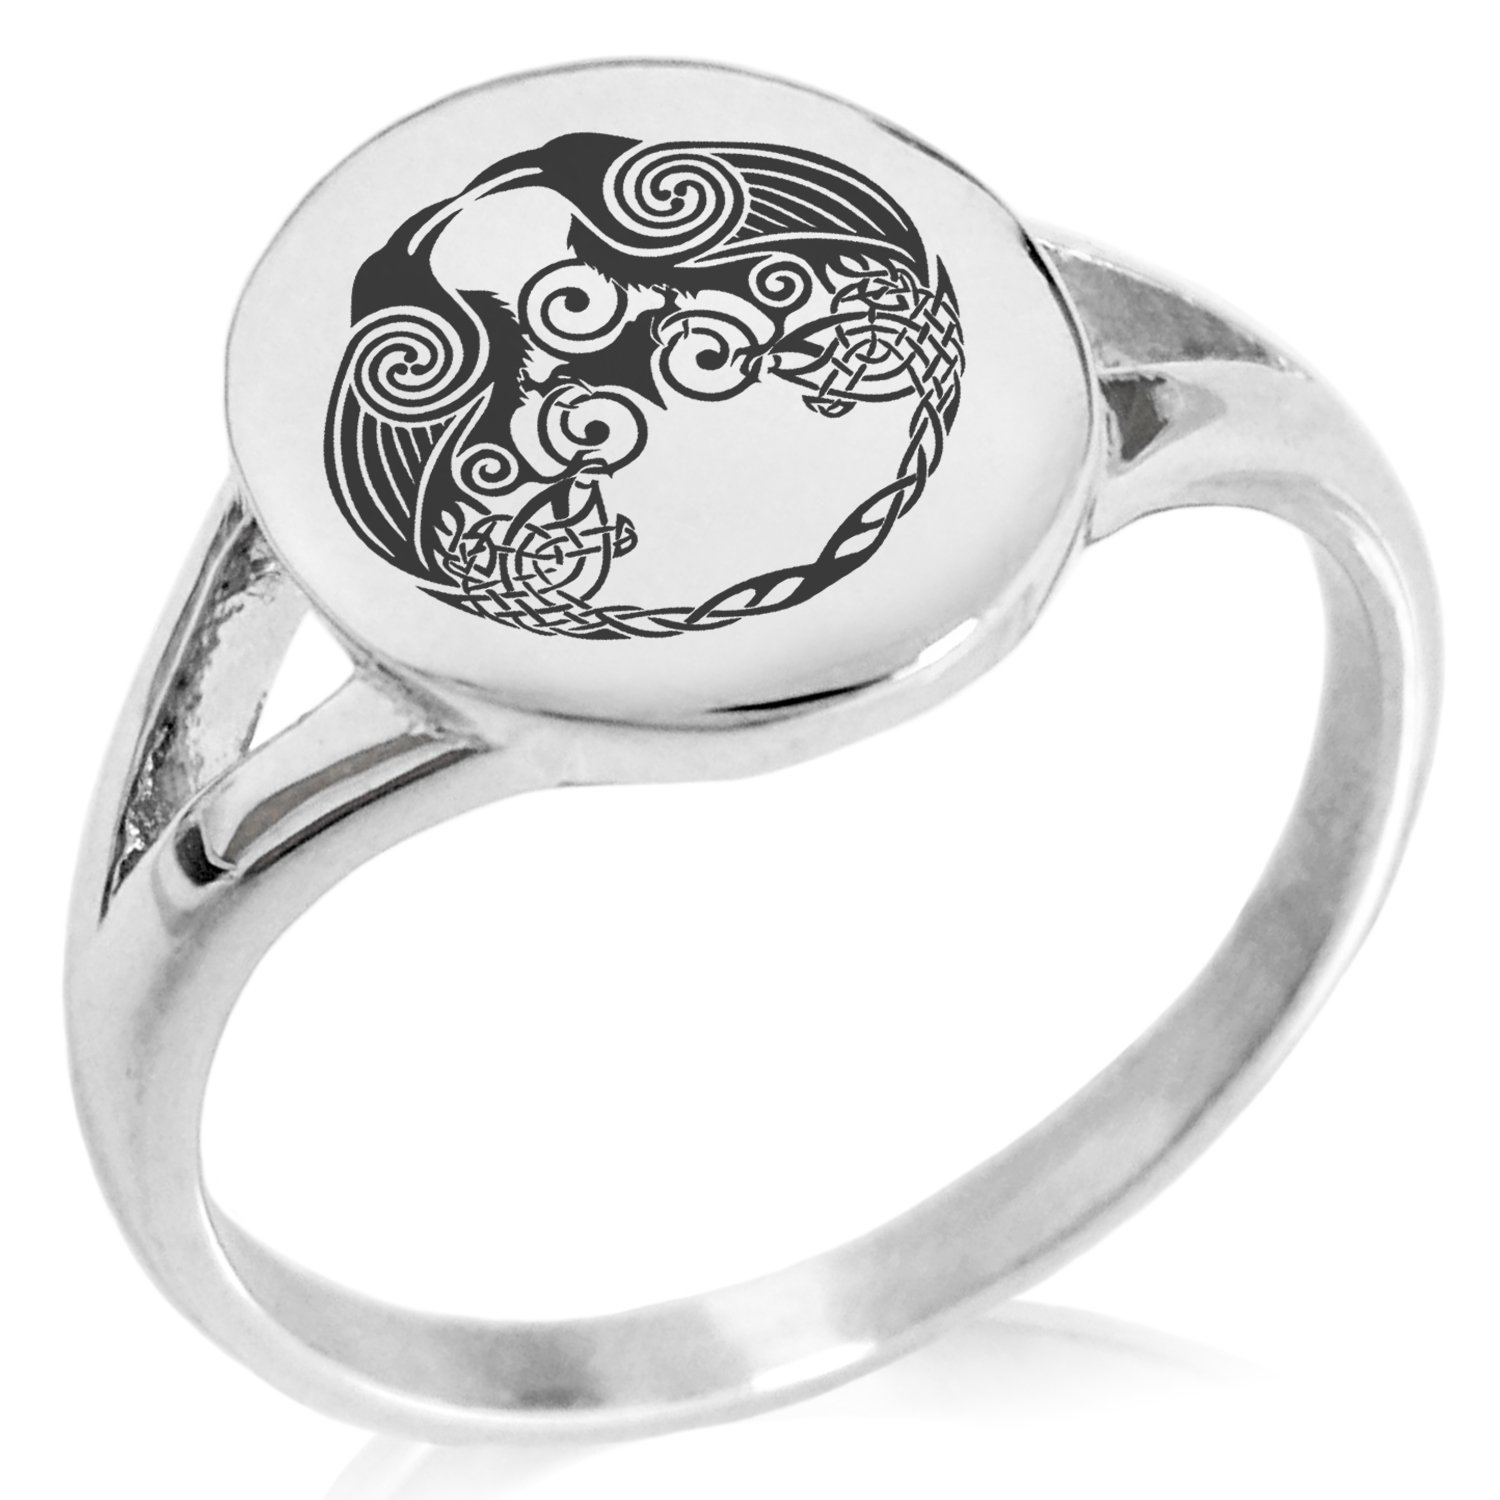 Tioneer Stainless Steel Yggdrasil Huginn & Muninn Odin's Ravens Symbol Minimalist Oval Top Polished Statement Ring, Size 10